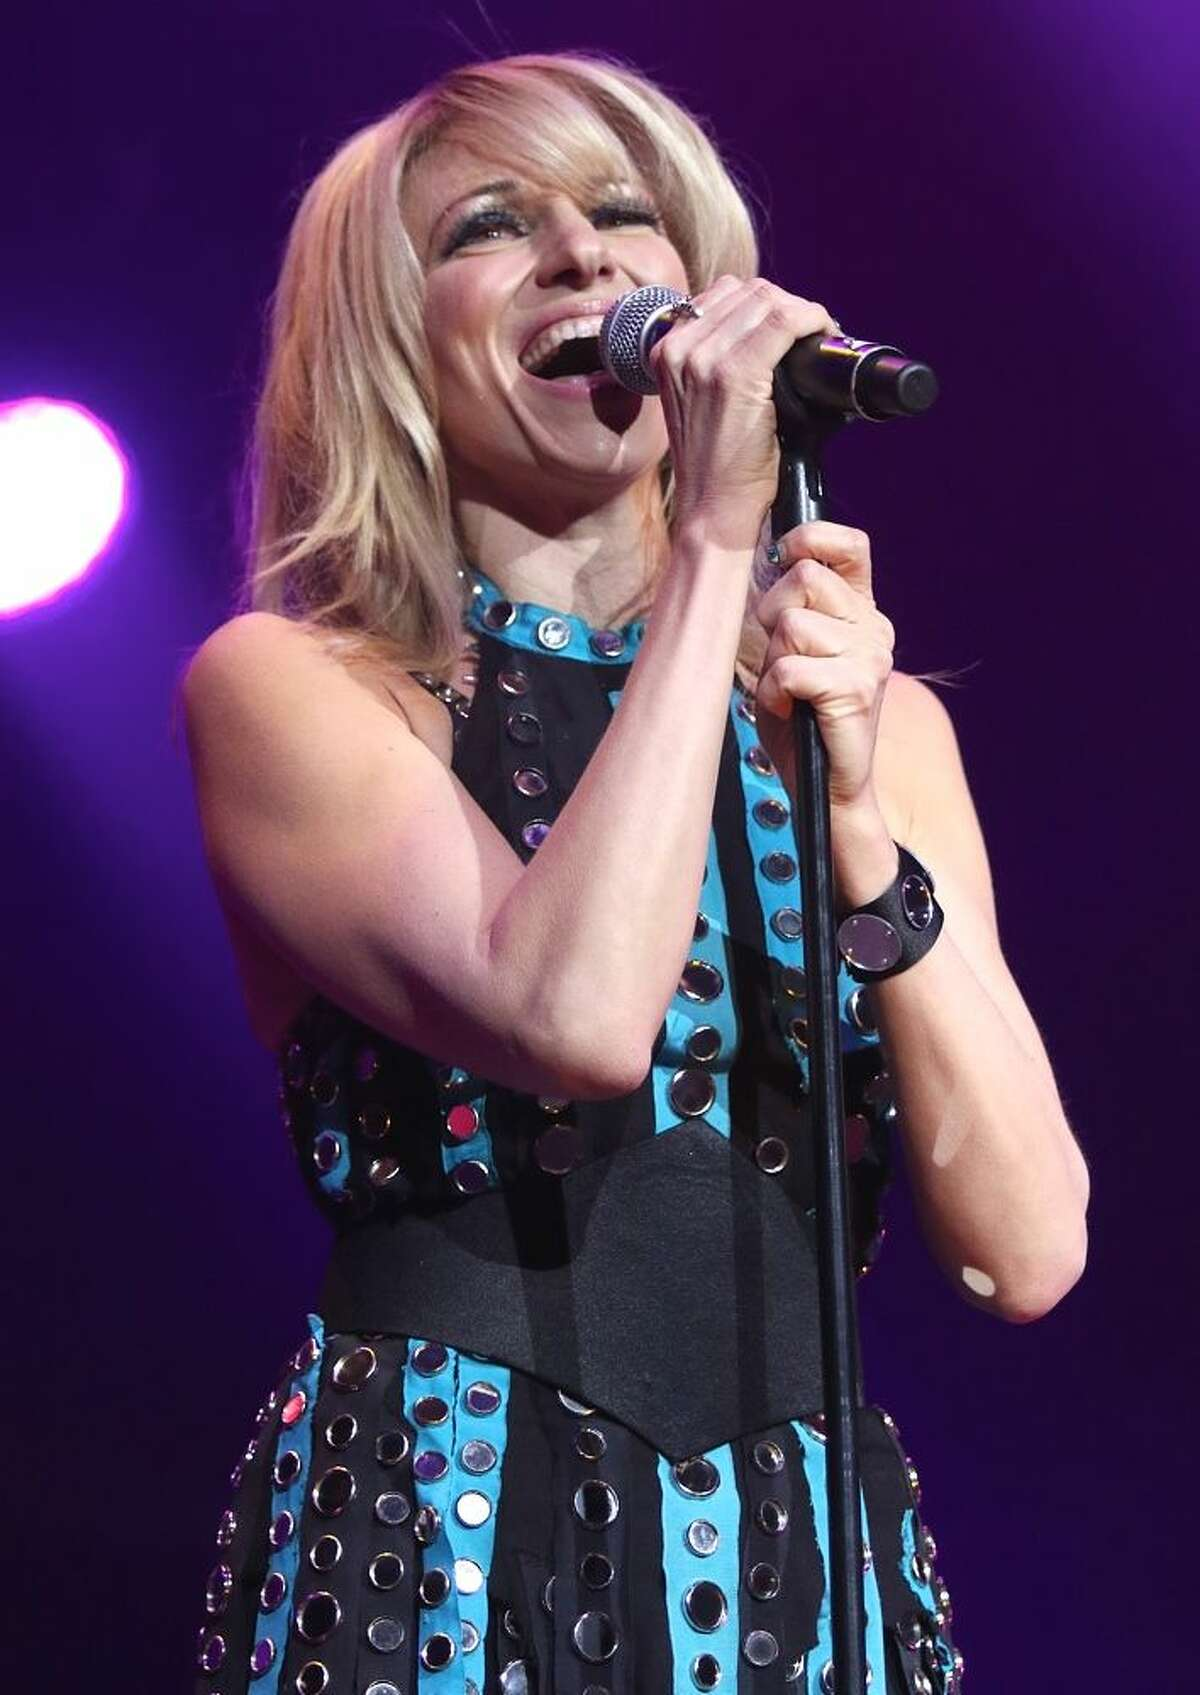 Photo by John Atashian Singer, songwriter, record producer, actress and former reality television competitor, Debbie Gibson, is shown performing at the Mohegan Sun Arena during her appearance Feb. 6. Debbieís set was part of the ì80ís Extravaganzaî concert, which also included performances by singers The Pointer Sisters, Terri Nunn & Berlin, Tiffany, Shannon, Club Nouveau and Andy Bell of Erasure.